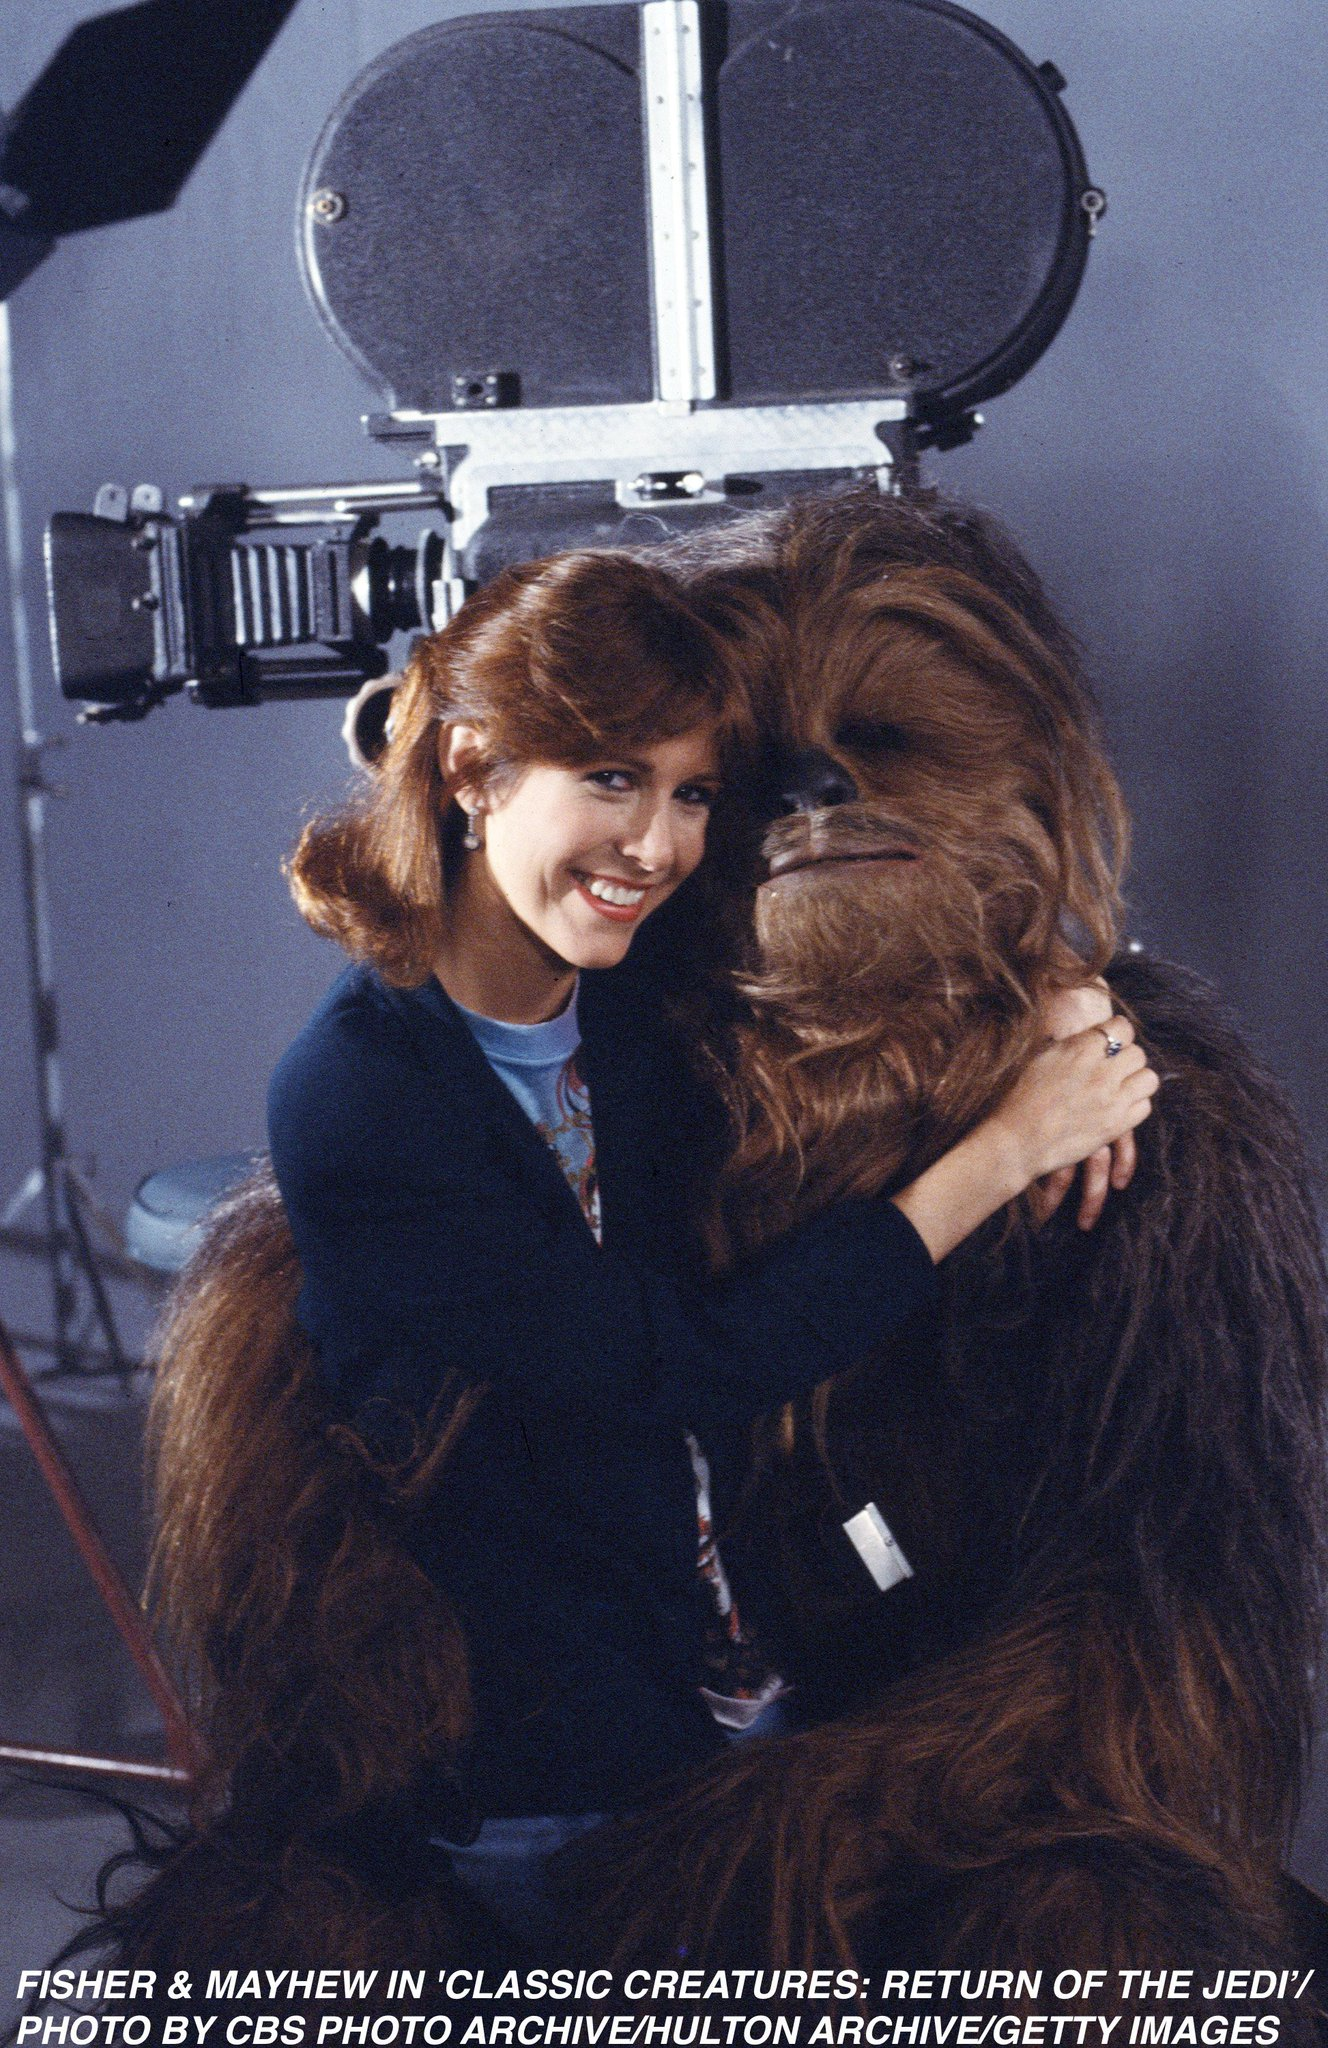 Happy birthday to the great Peter Mayhew, who brought Chewbacca to life in the saga!